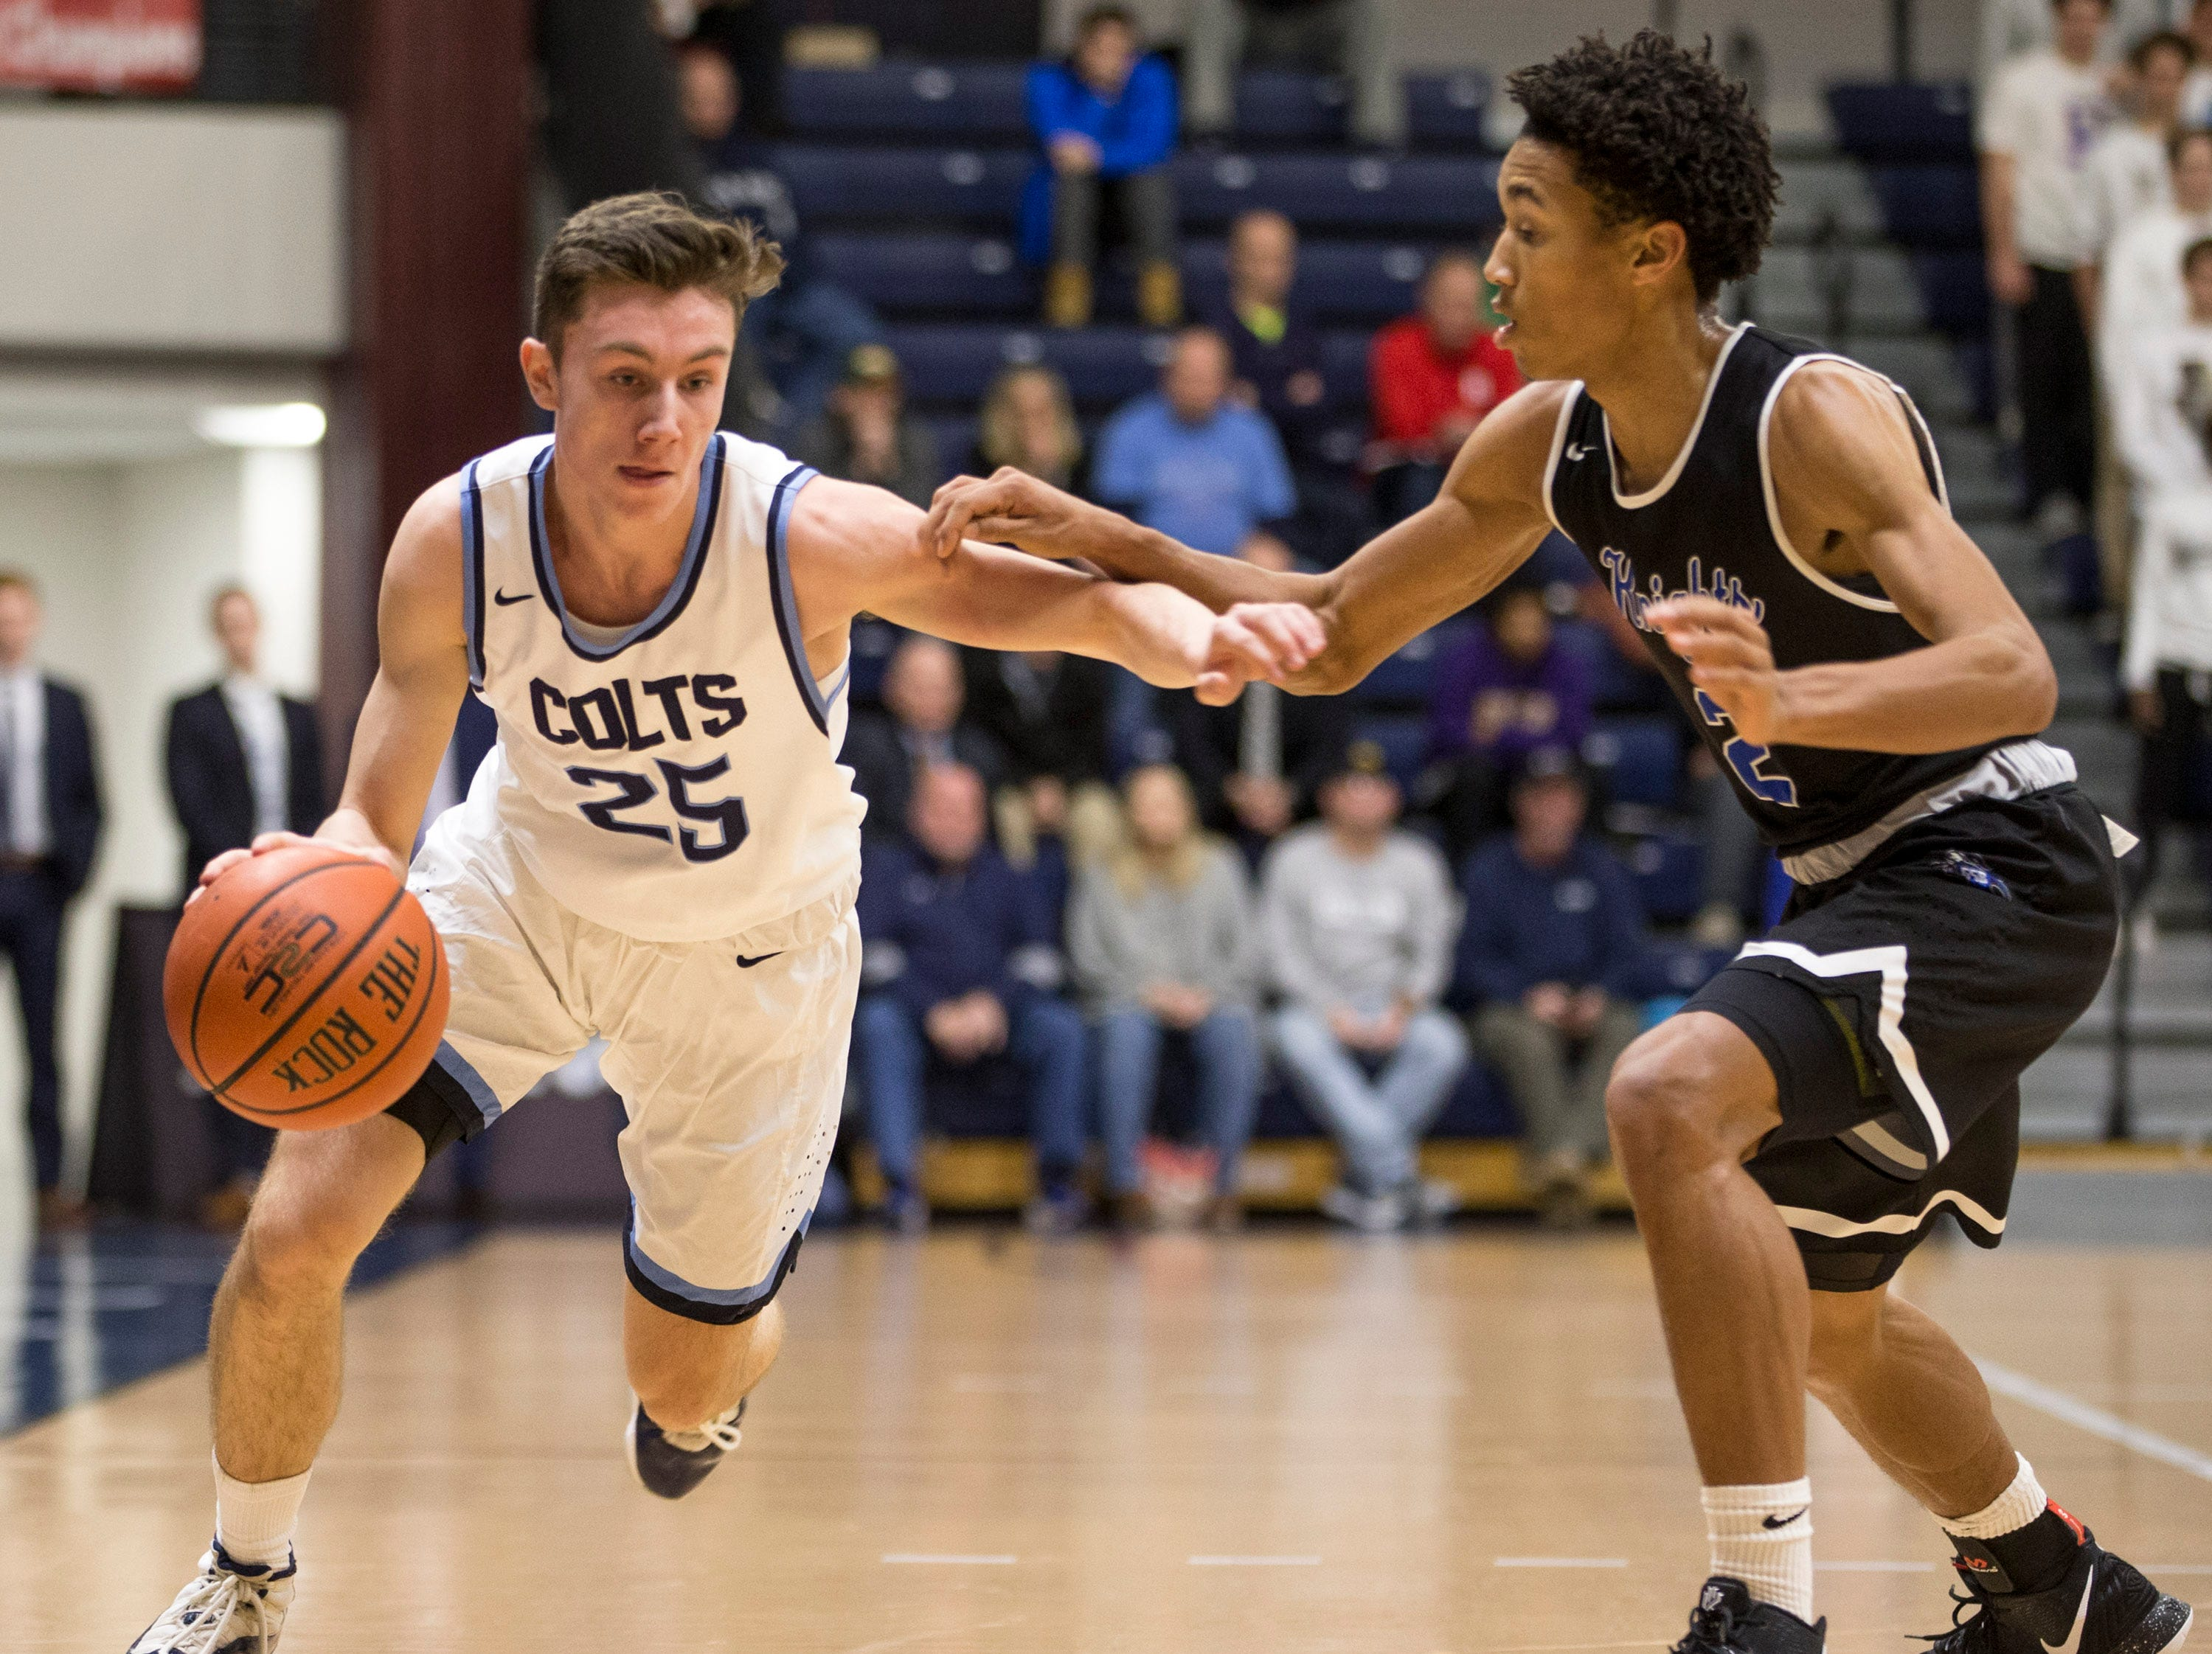 Colin Farrell of Christian Brothers Academy drives past Denver Anglin. The 2019 Boardwalk Hoop Group Showcase tournament takes place at Brookdale Community College. Game one features Gill St. Bernard's vs Christian Brothers Academy. Middletown, NJSaturday, January 12, 2019